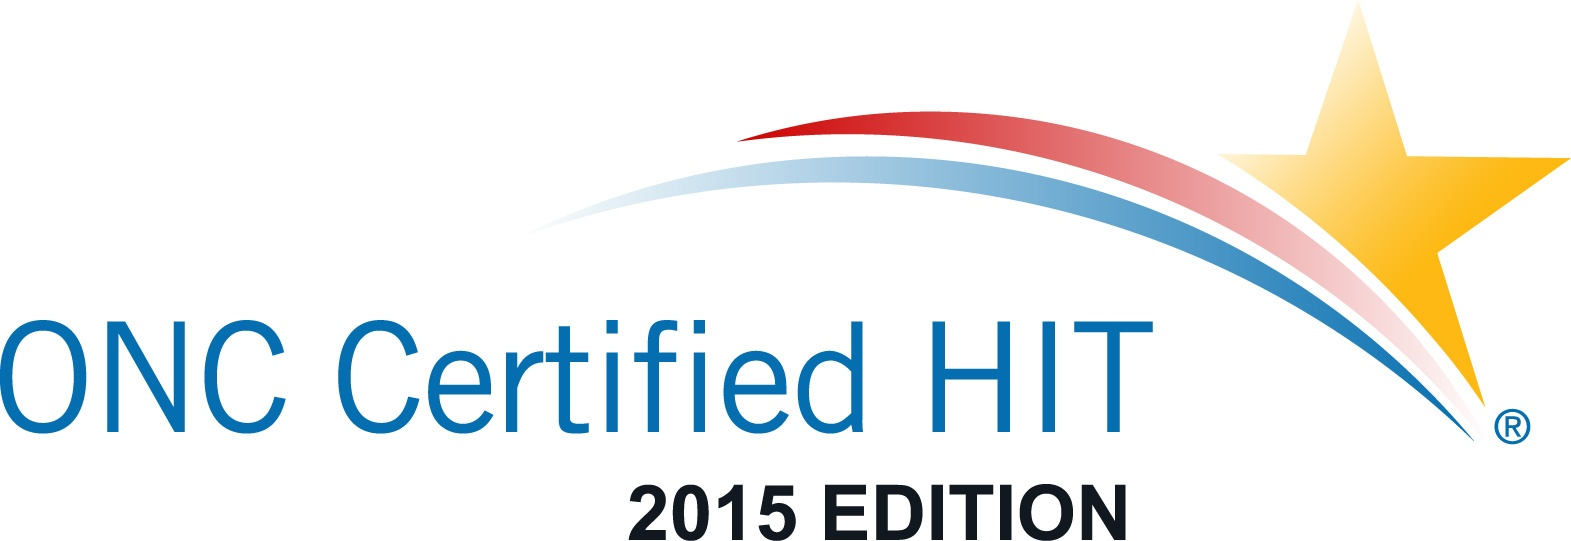 ONC_Certification_HIT_2015Edition_Stacked_RGB.jpg